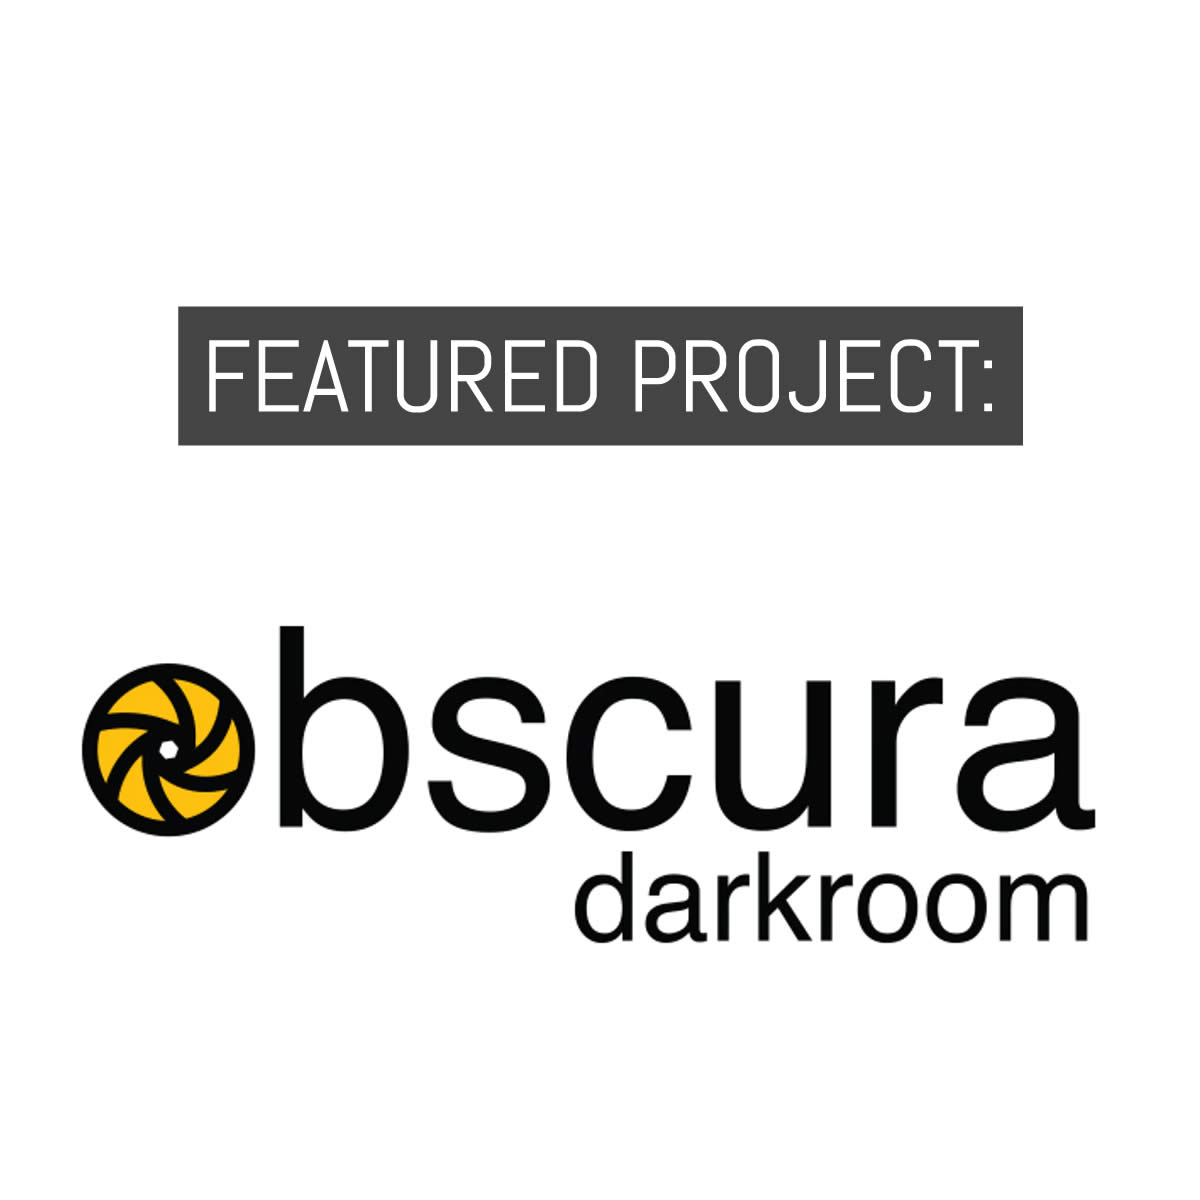 Cover - Featured project - Obscura Darkroom